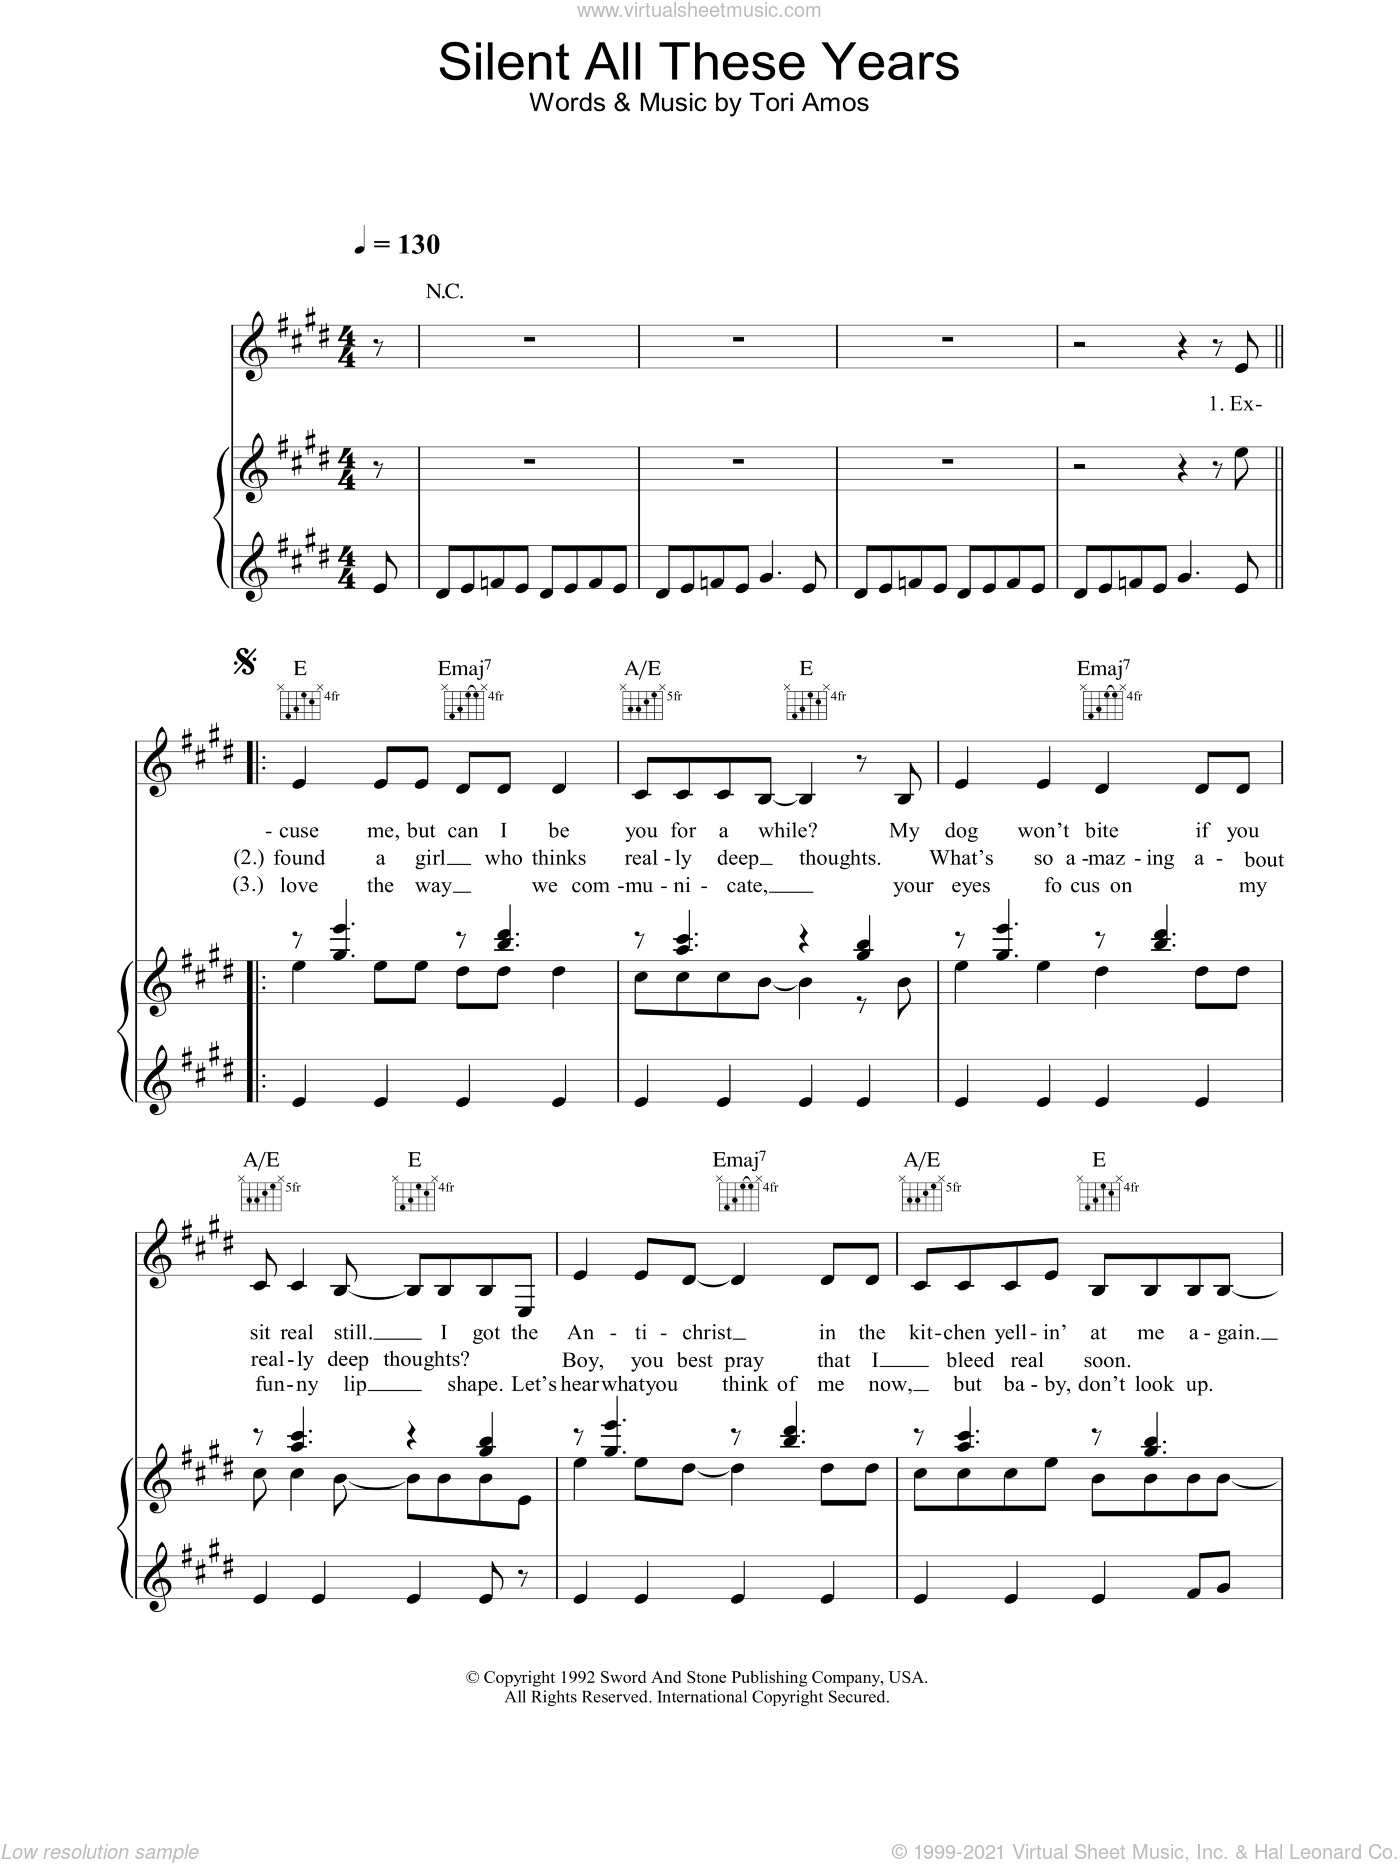 Silent All These Years sheet music for voice, piano or guitar by Tori Amos